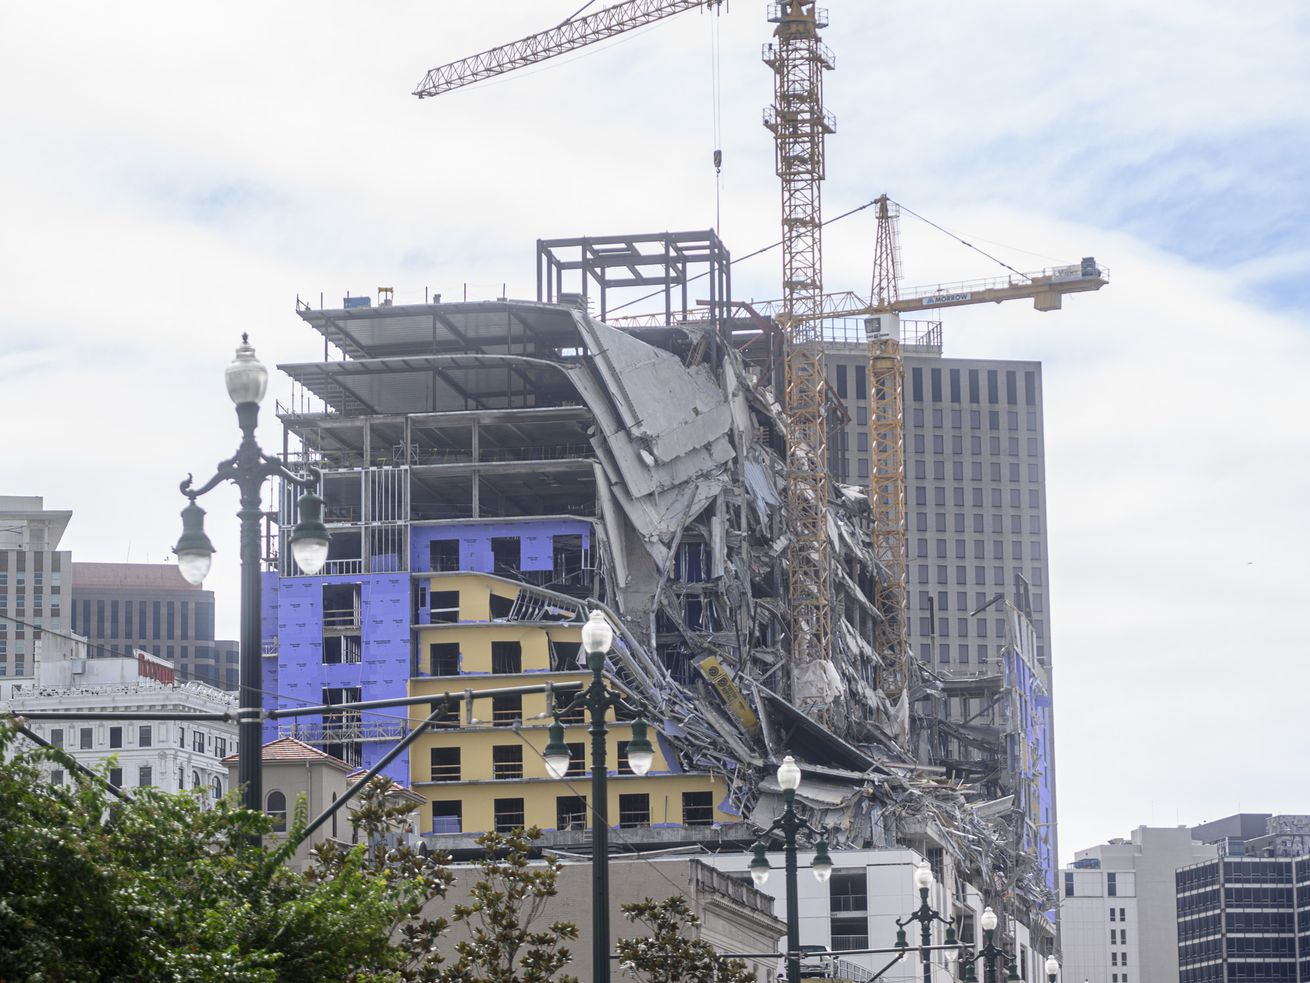 A collapsed hotel with two large cranes hovering above it faces Canal Street